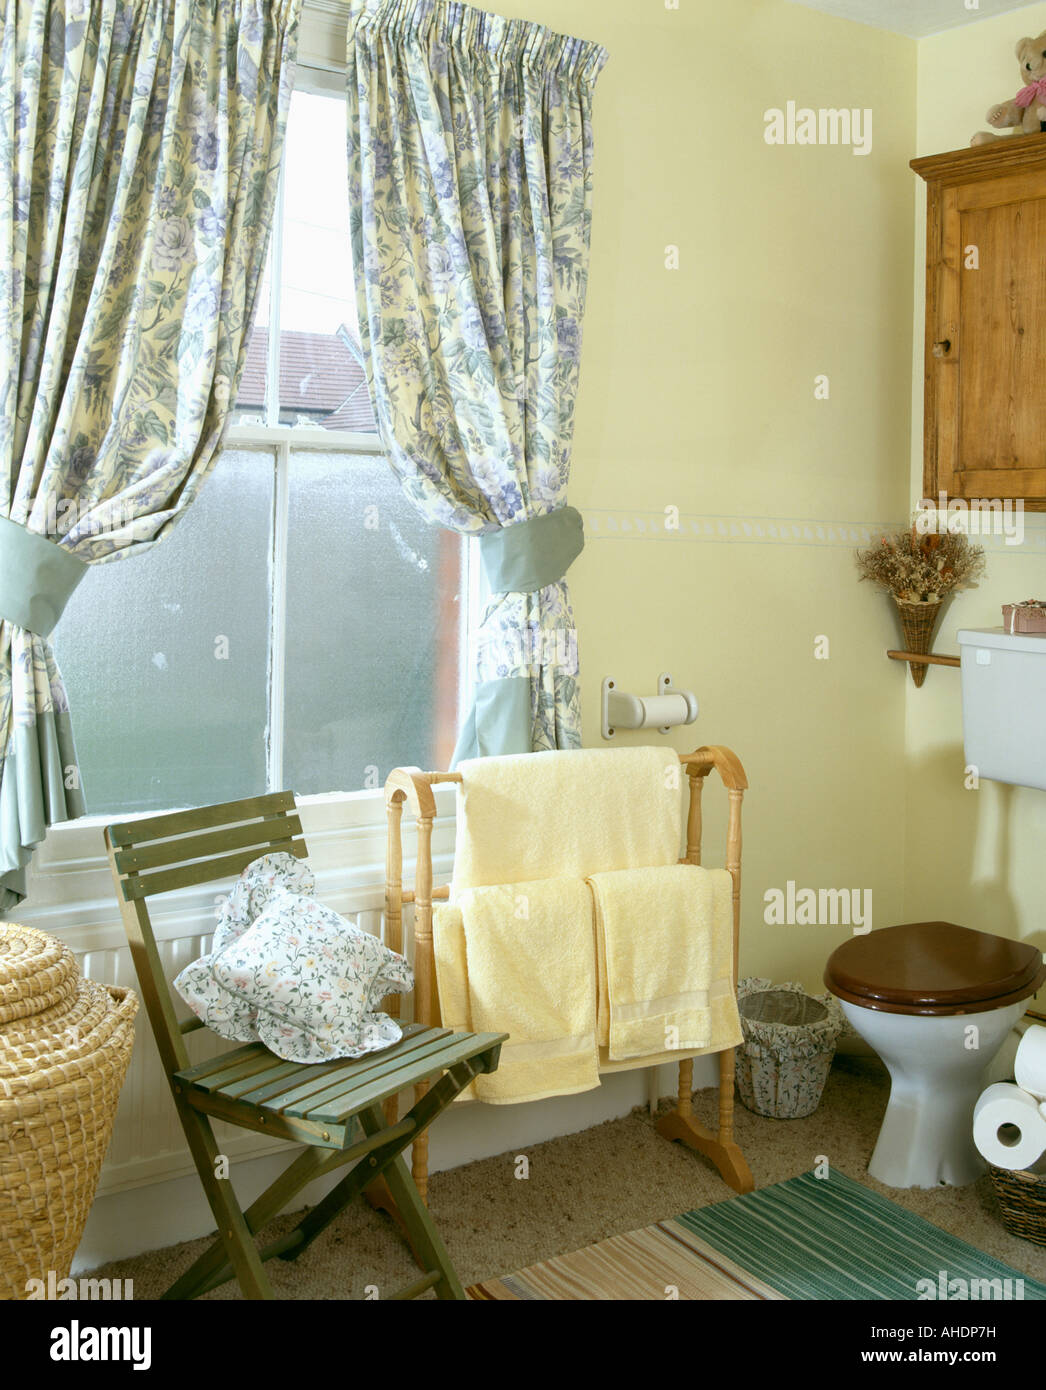 Blue Floral Curtains With Tiebacks In Pale Yellow Bathroom With Yellow  Towels On Wooden Towel Rail